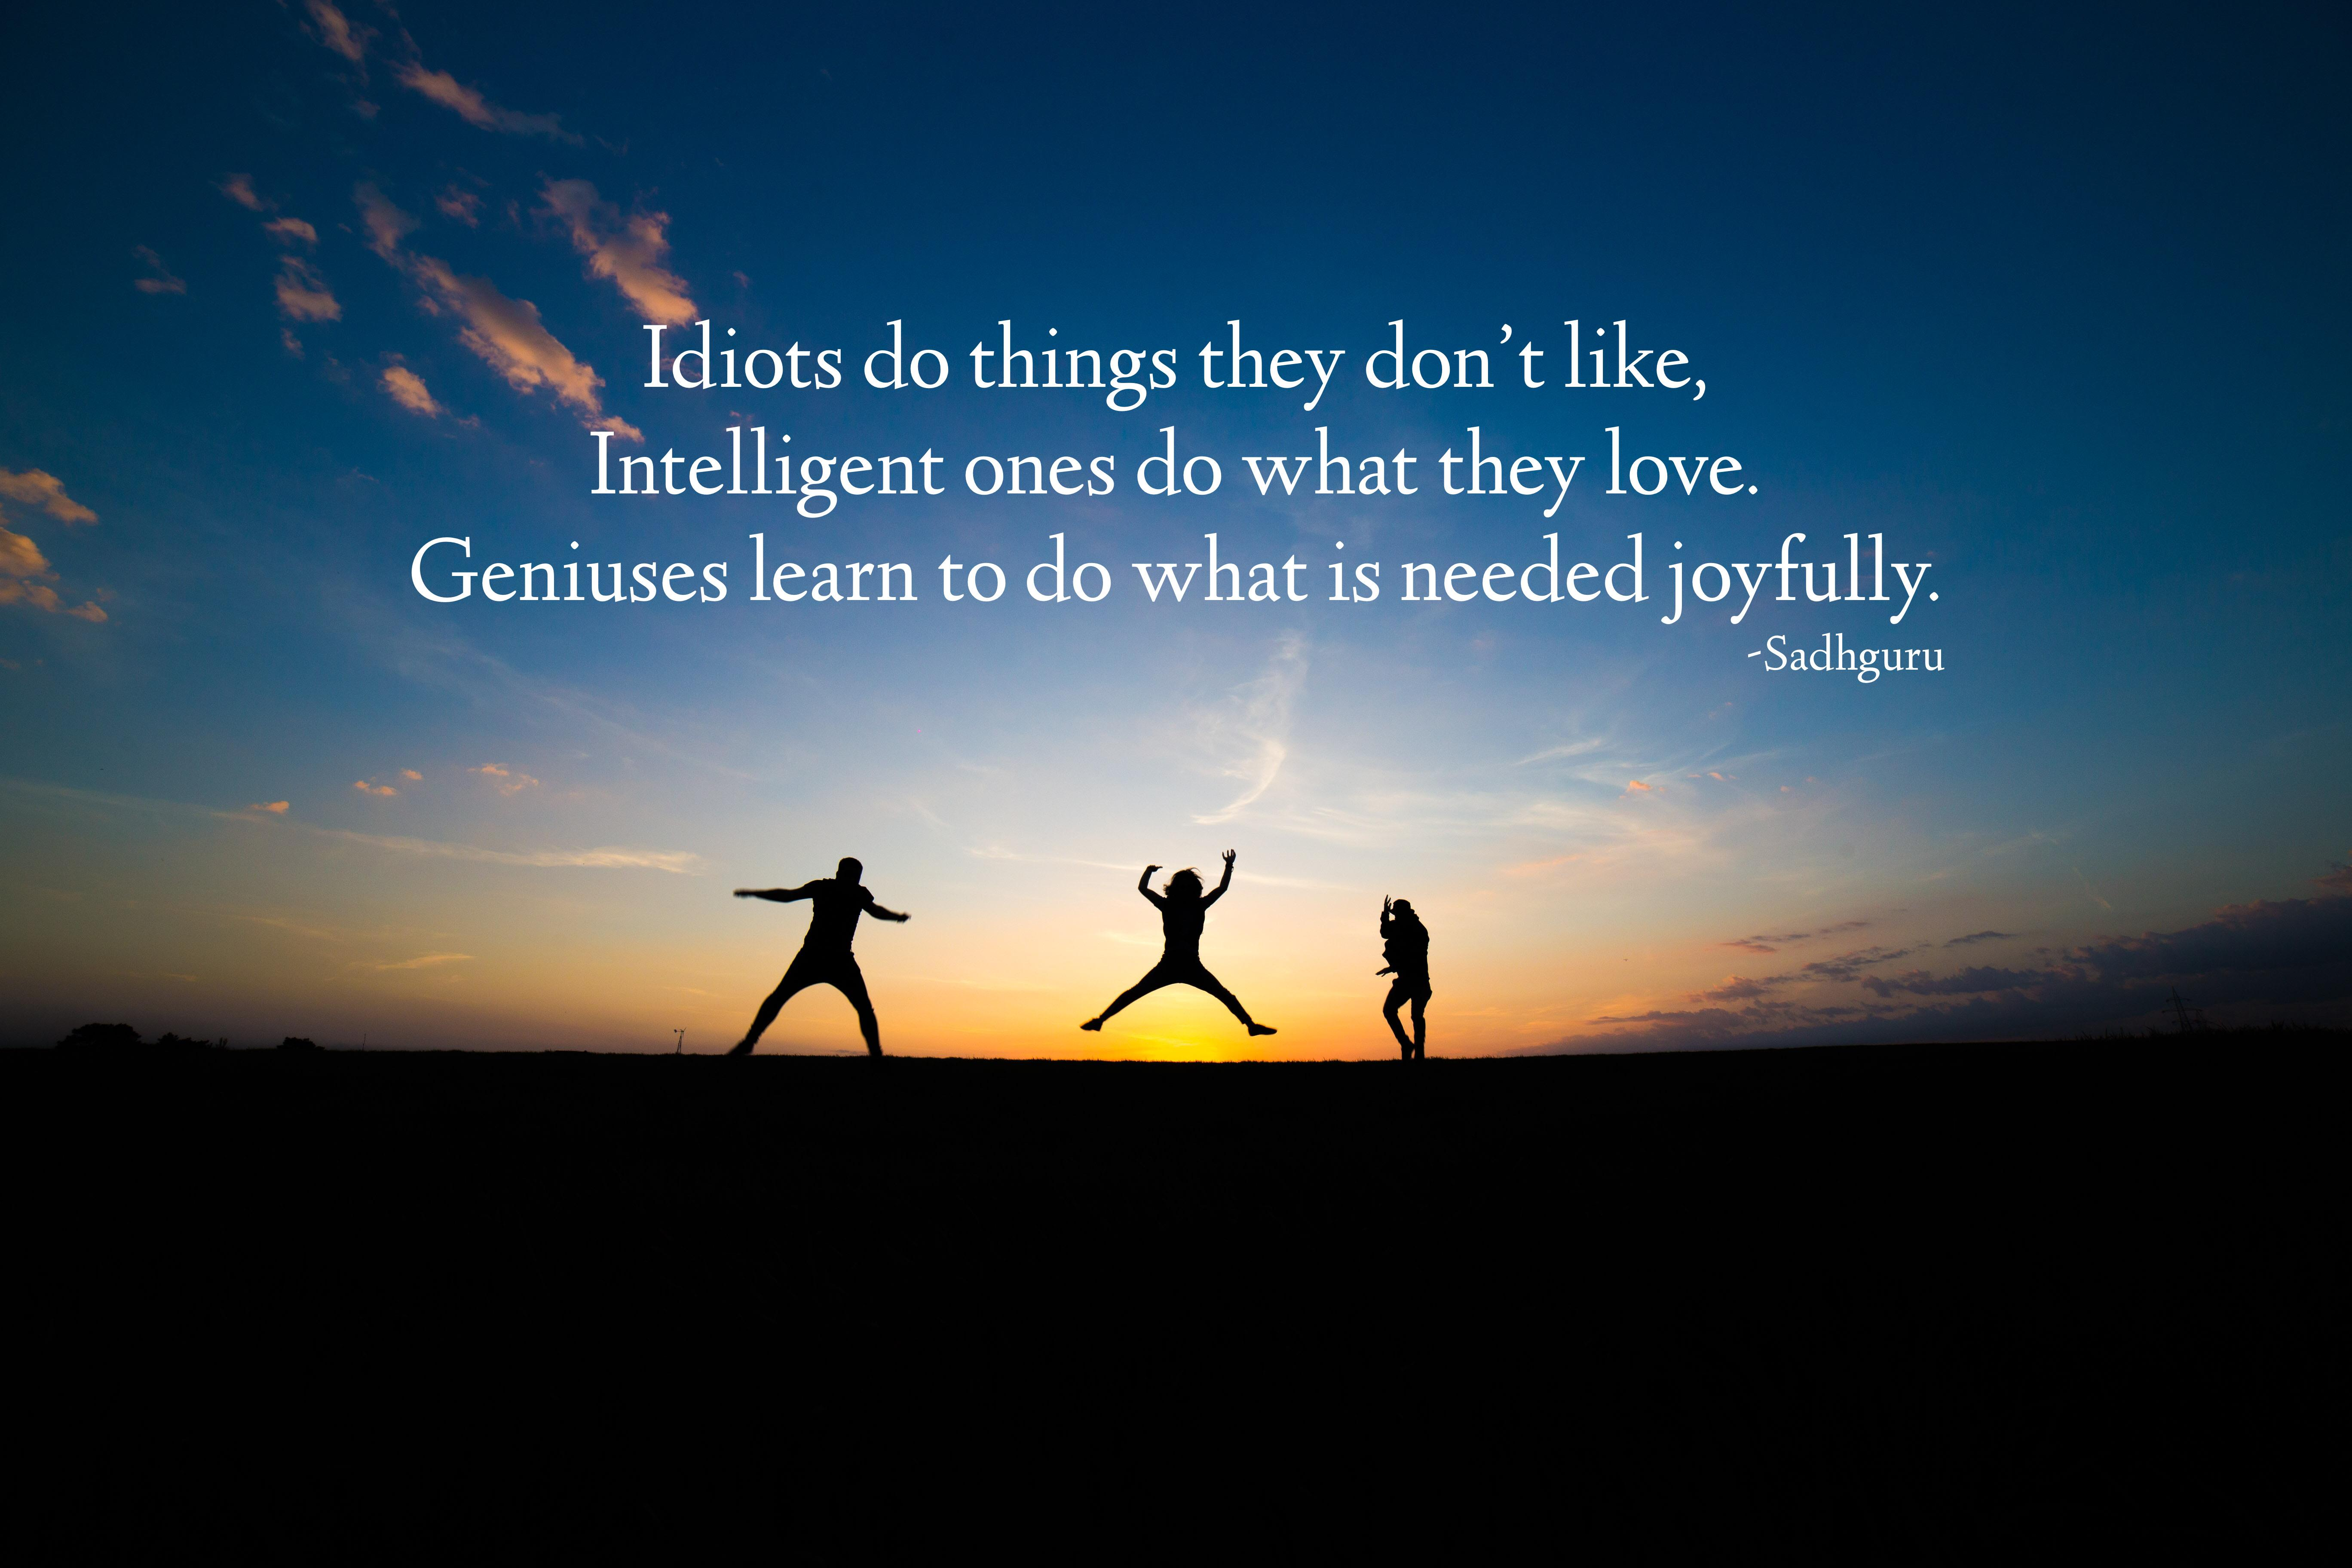 """Idiots do things they don't like….."" by Sadhguru [5472*3648]"